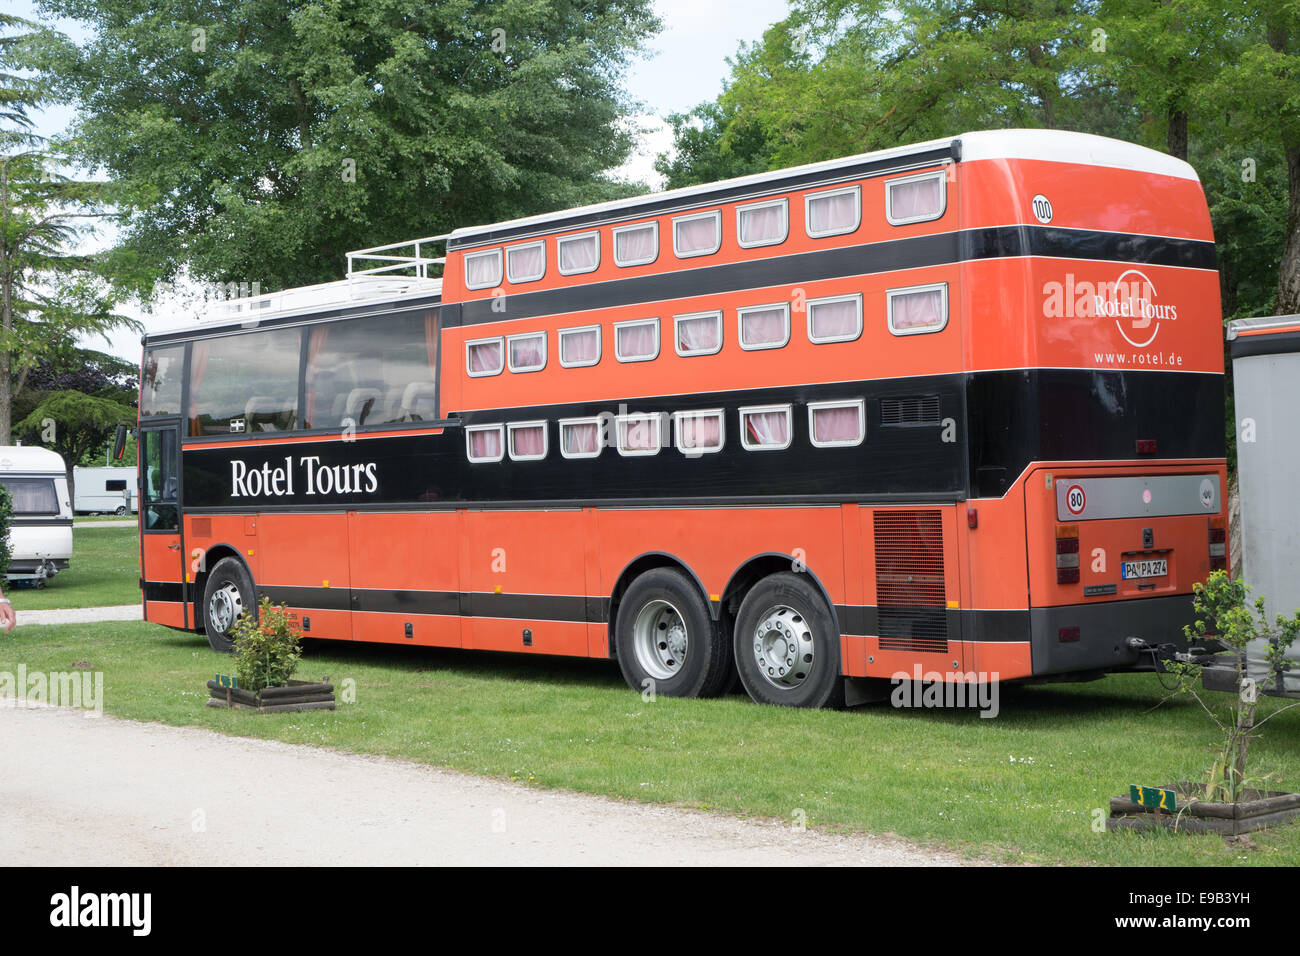 rotel german double decker tour bus and bike trailer parked at le stock photo royalty free. Black Bedroom Furniture Sets. Home Design Ideas